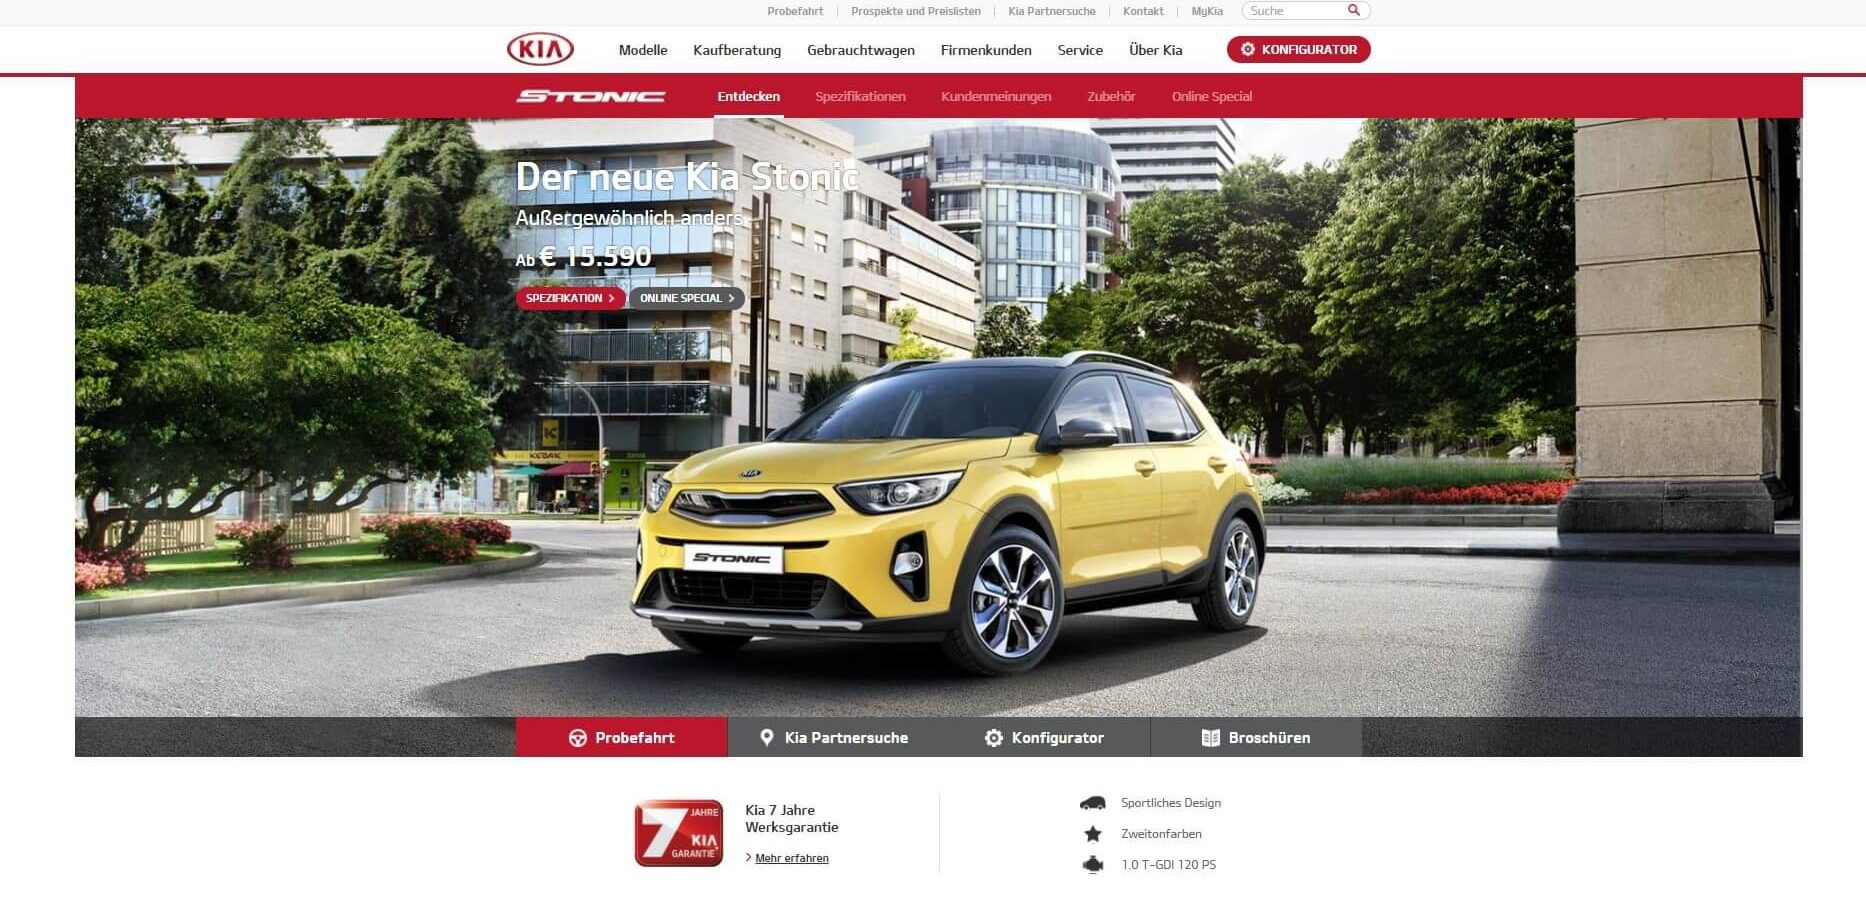 kia.at Website